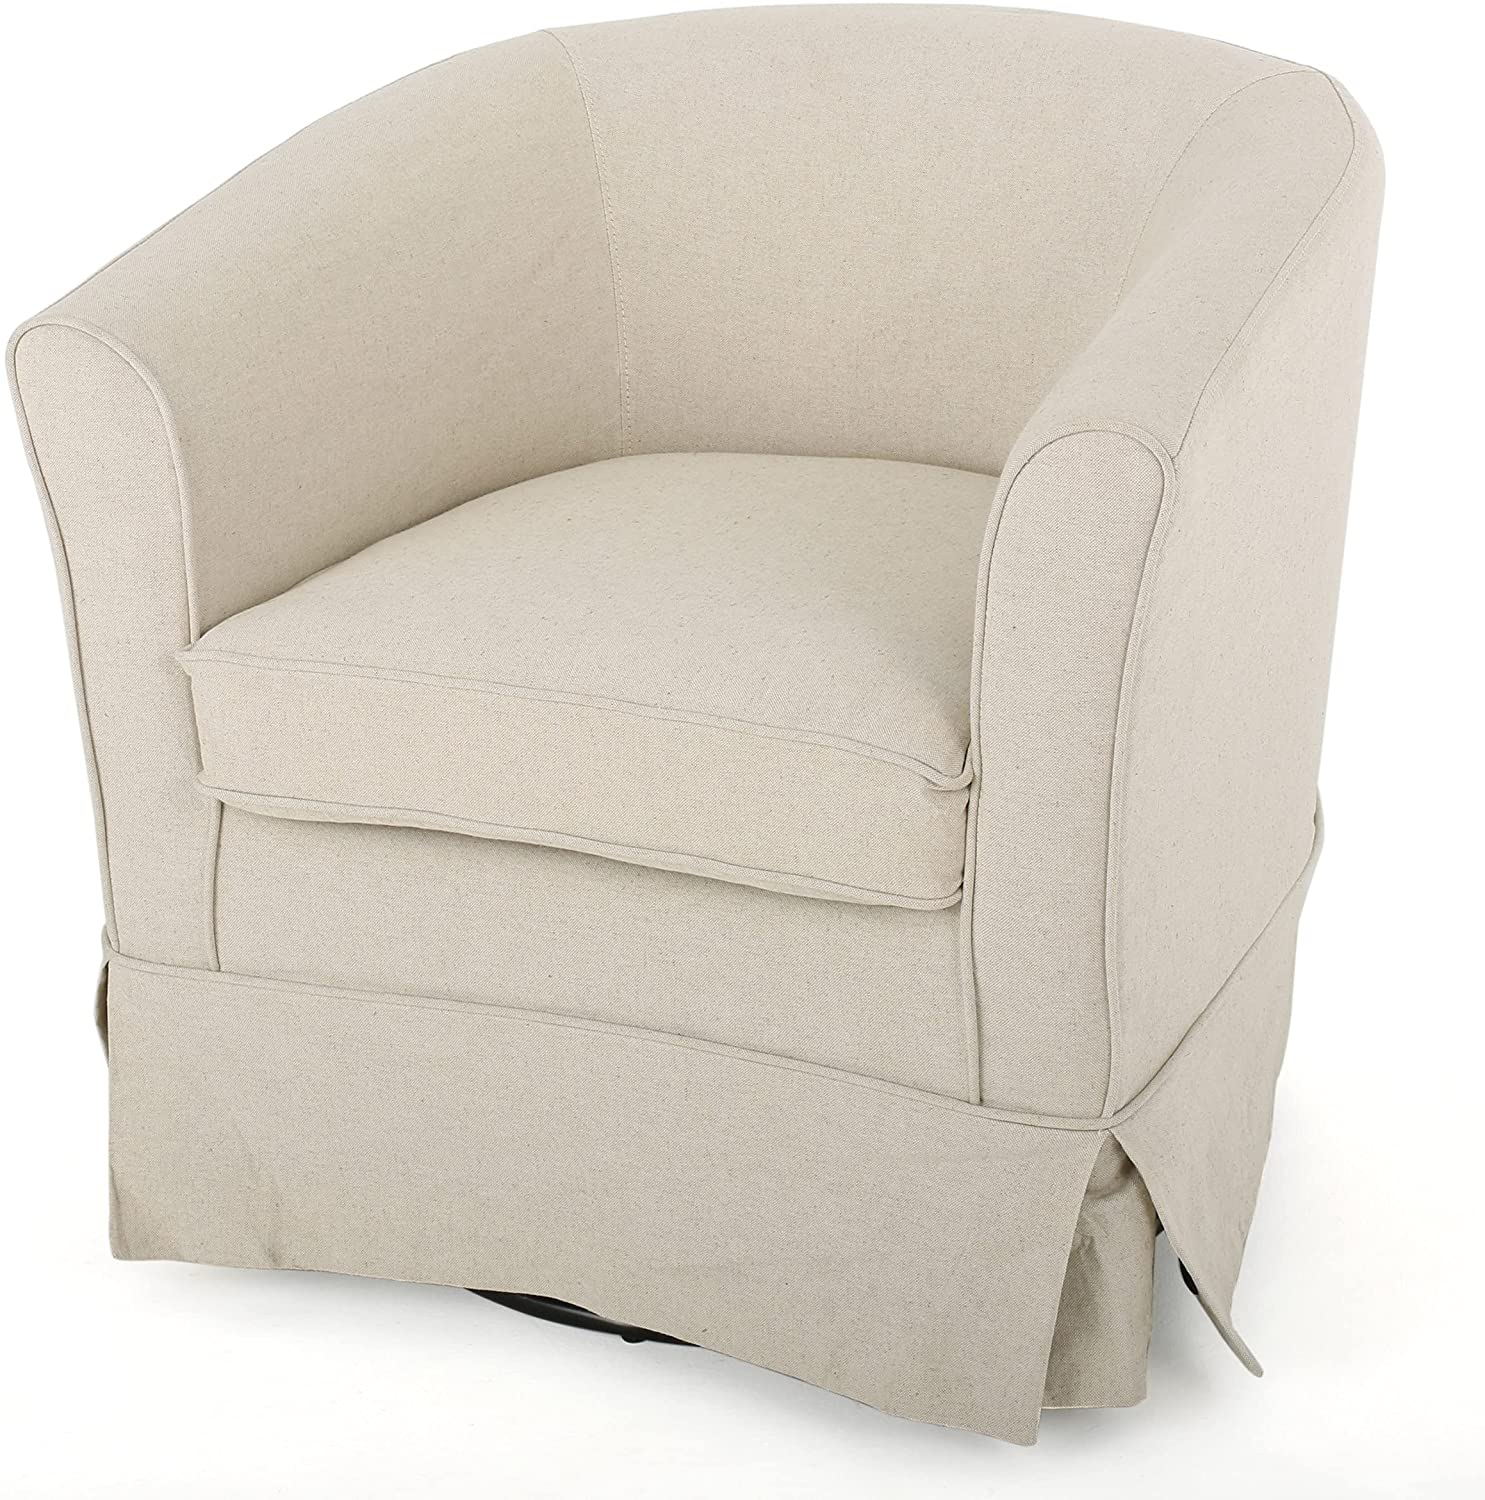 Barrel chair with loose slipcover from Christopher Knight